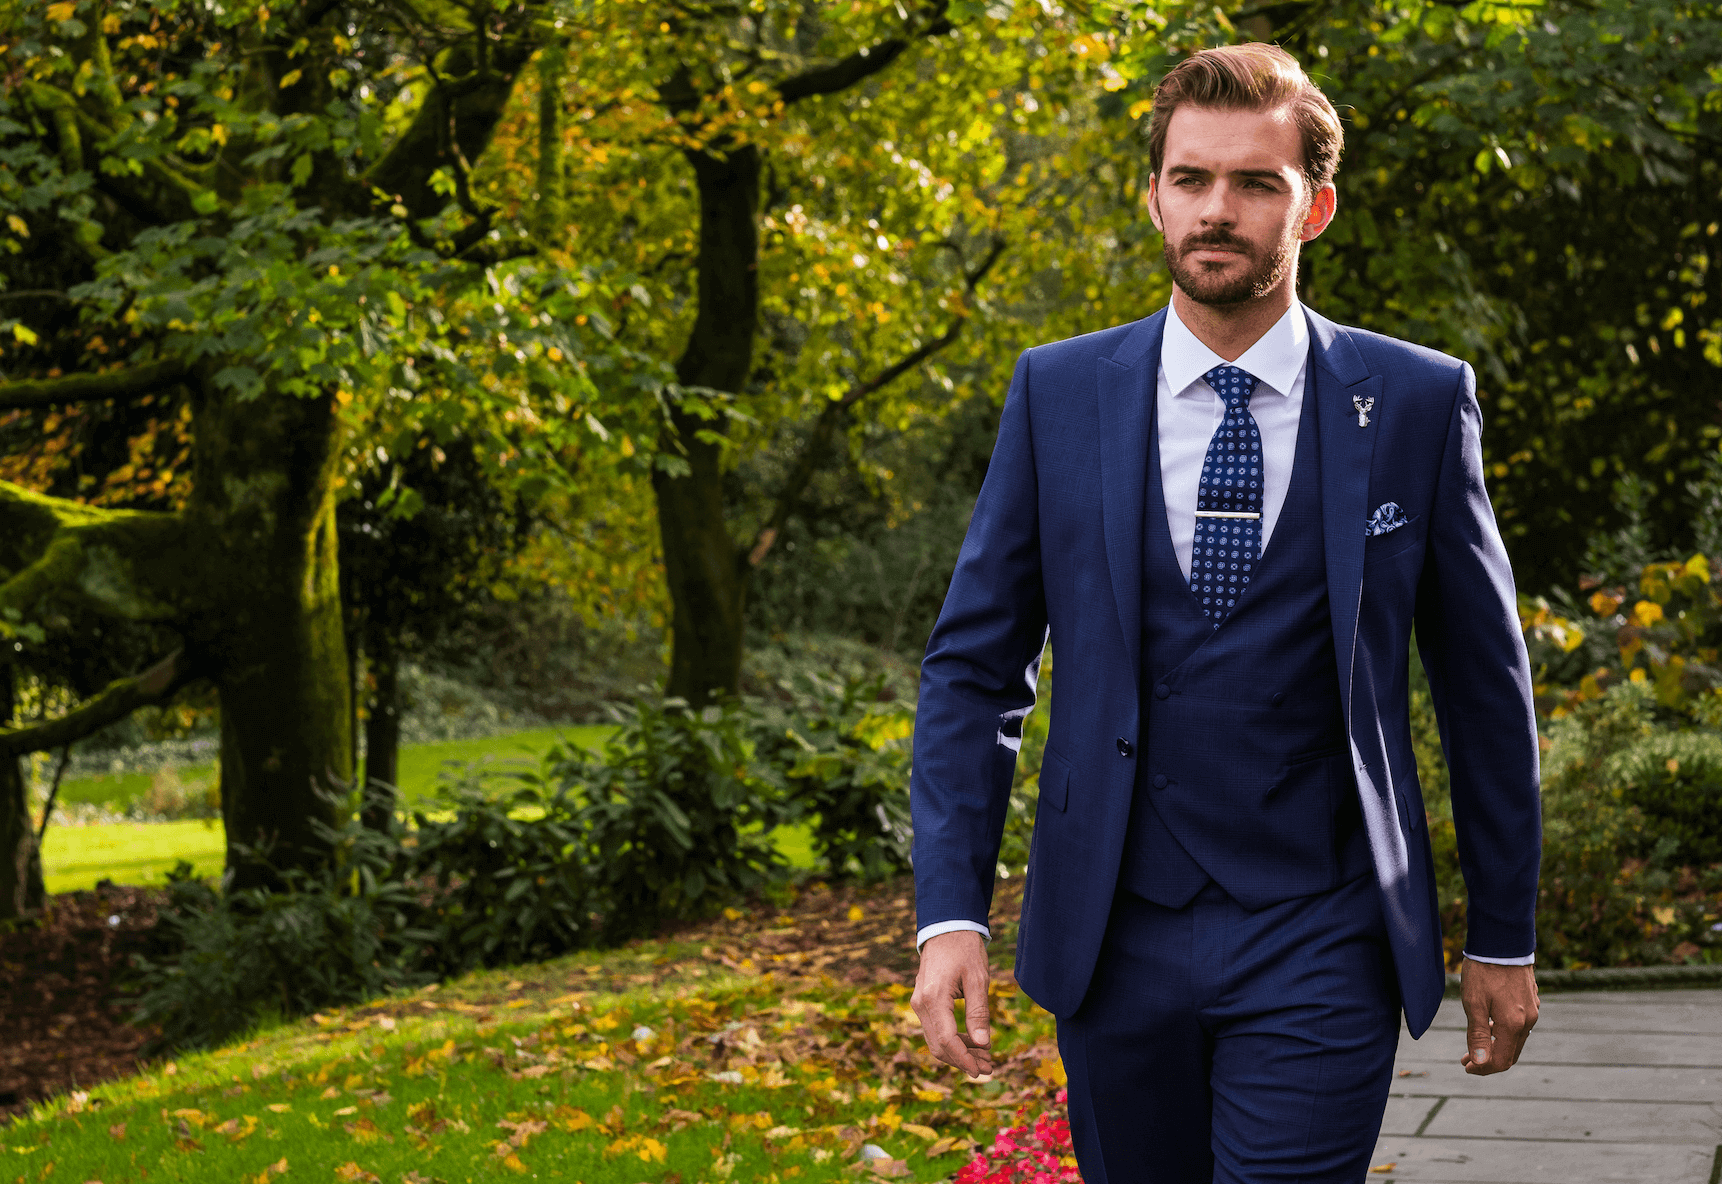 Man walking through gardens wearing a dark navy 3 piece suit with a spotted navy tie.